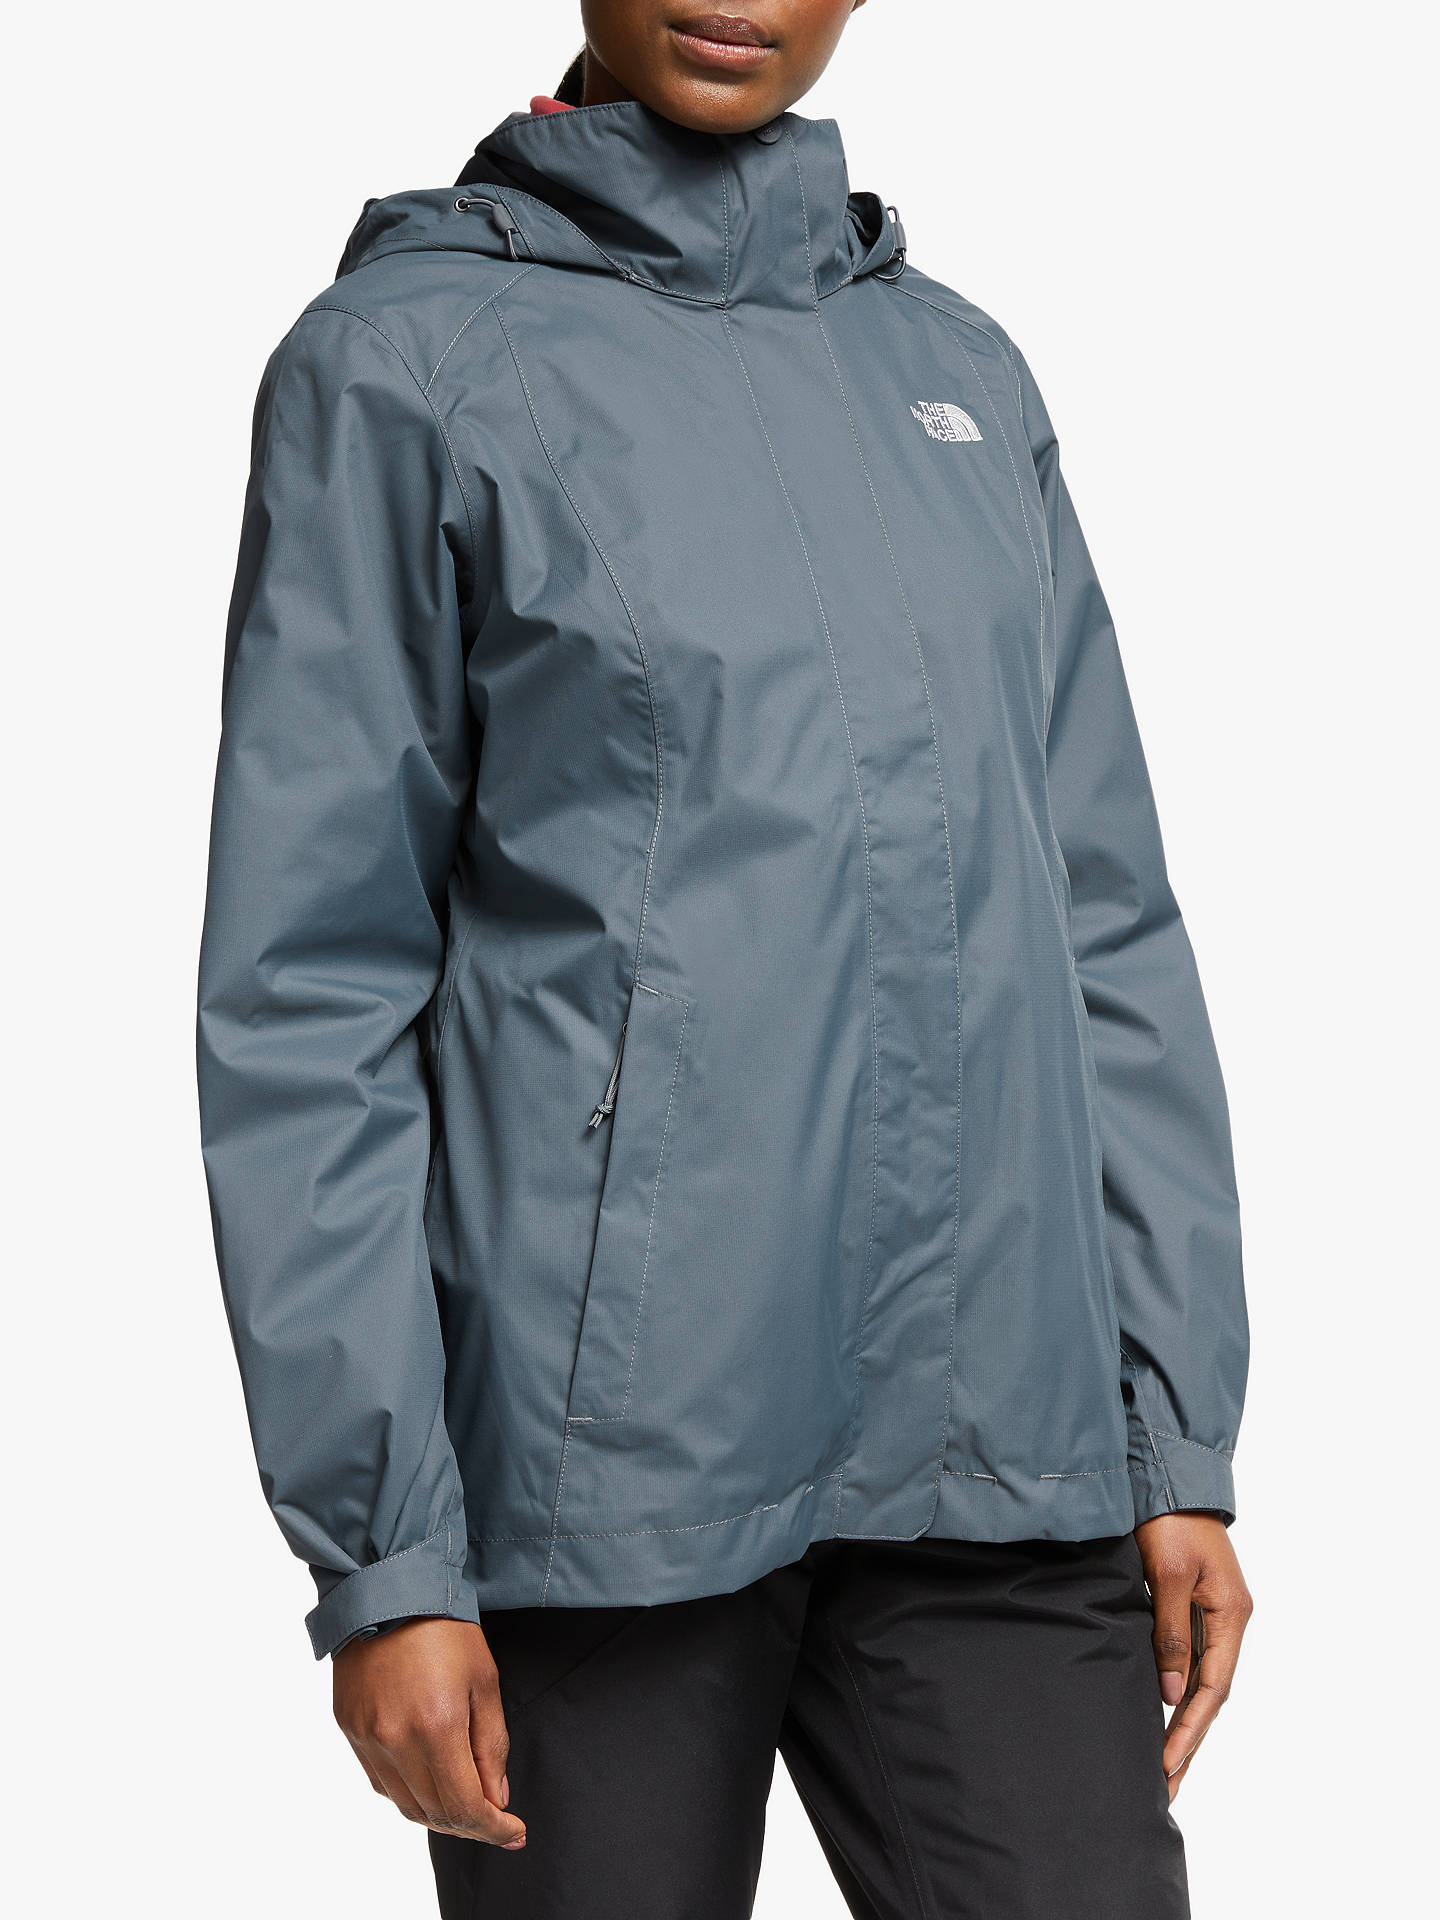 4cddffd16 The North Face Evolve II Triclimate 3-in-1 Waterproof Women's Jacket,  Vanadis Grey/Radiant Orange